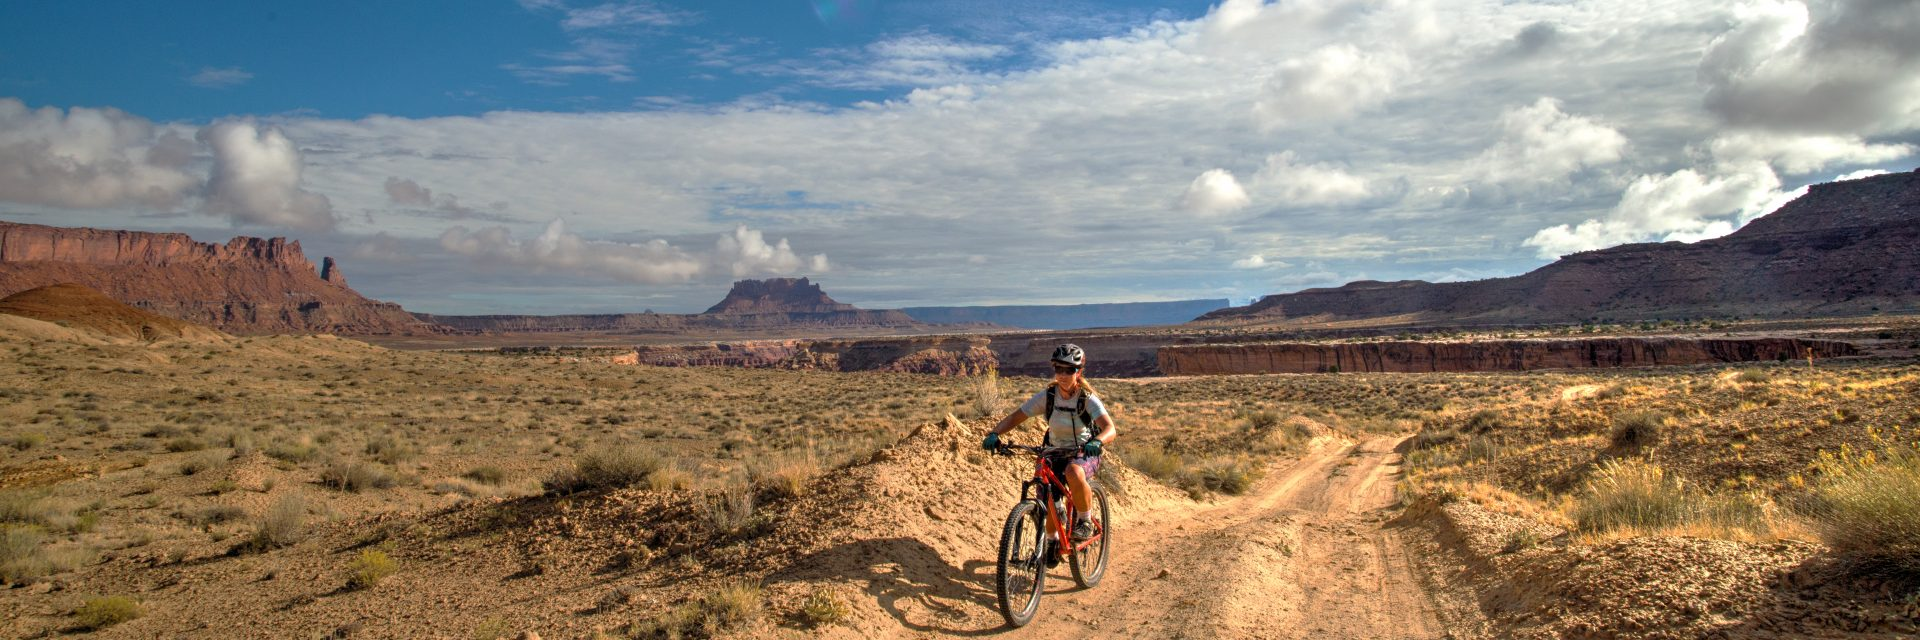 A rider heads away from the edge of The White Rim layer on Day 3 of a 5-day guided mountain bike tour of The Maze in Cayonlands National Park